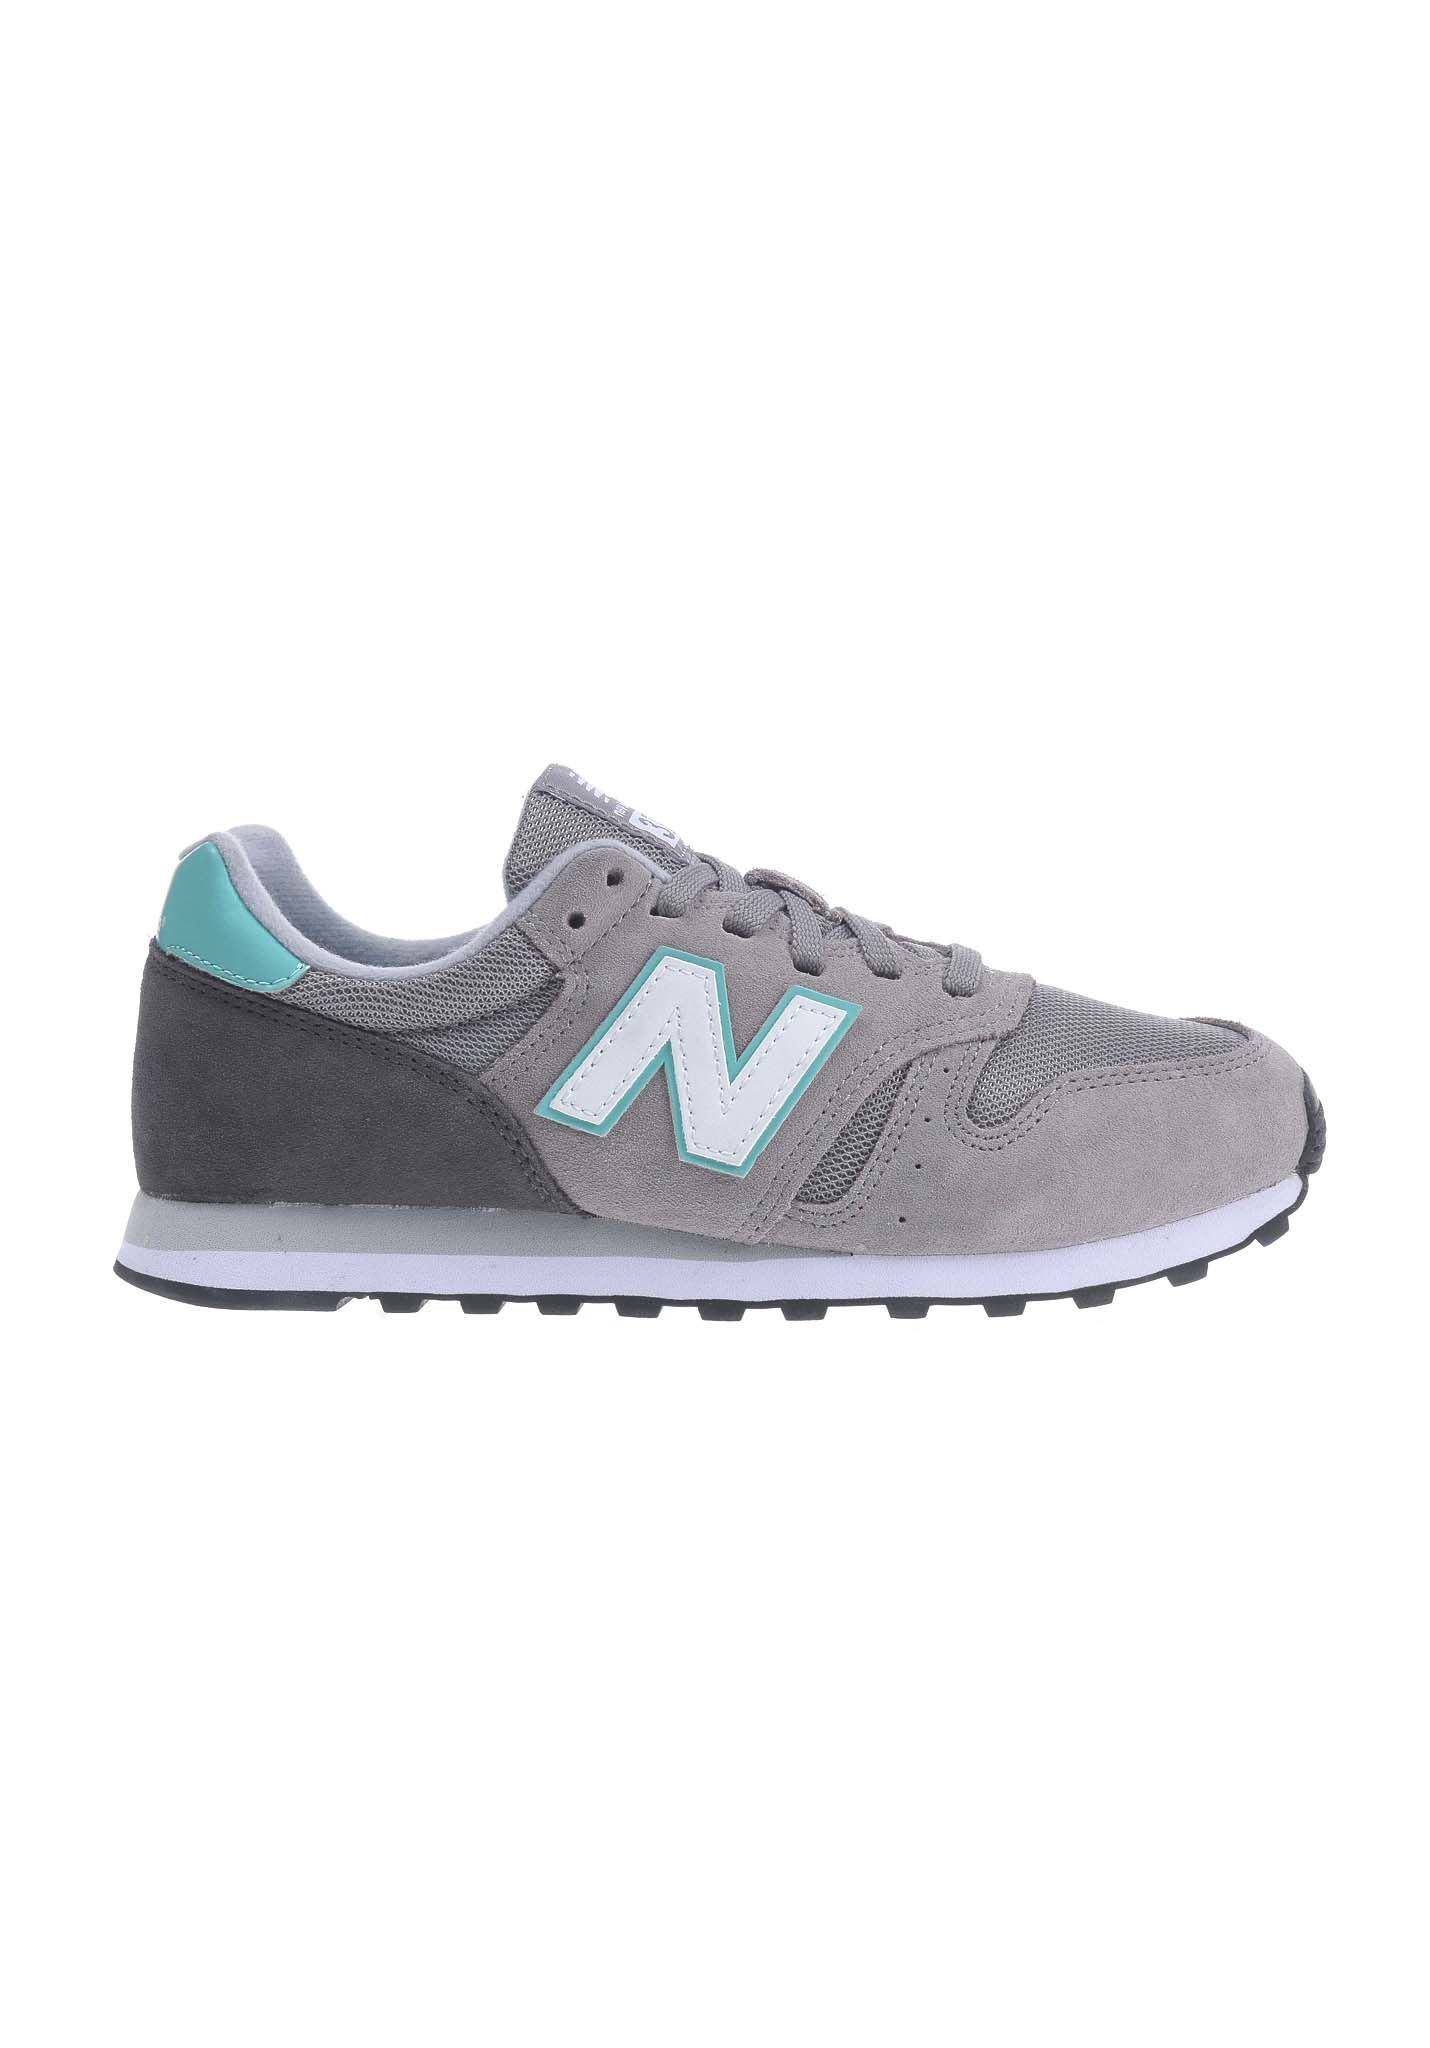 New Balance Wl373 Homme